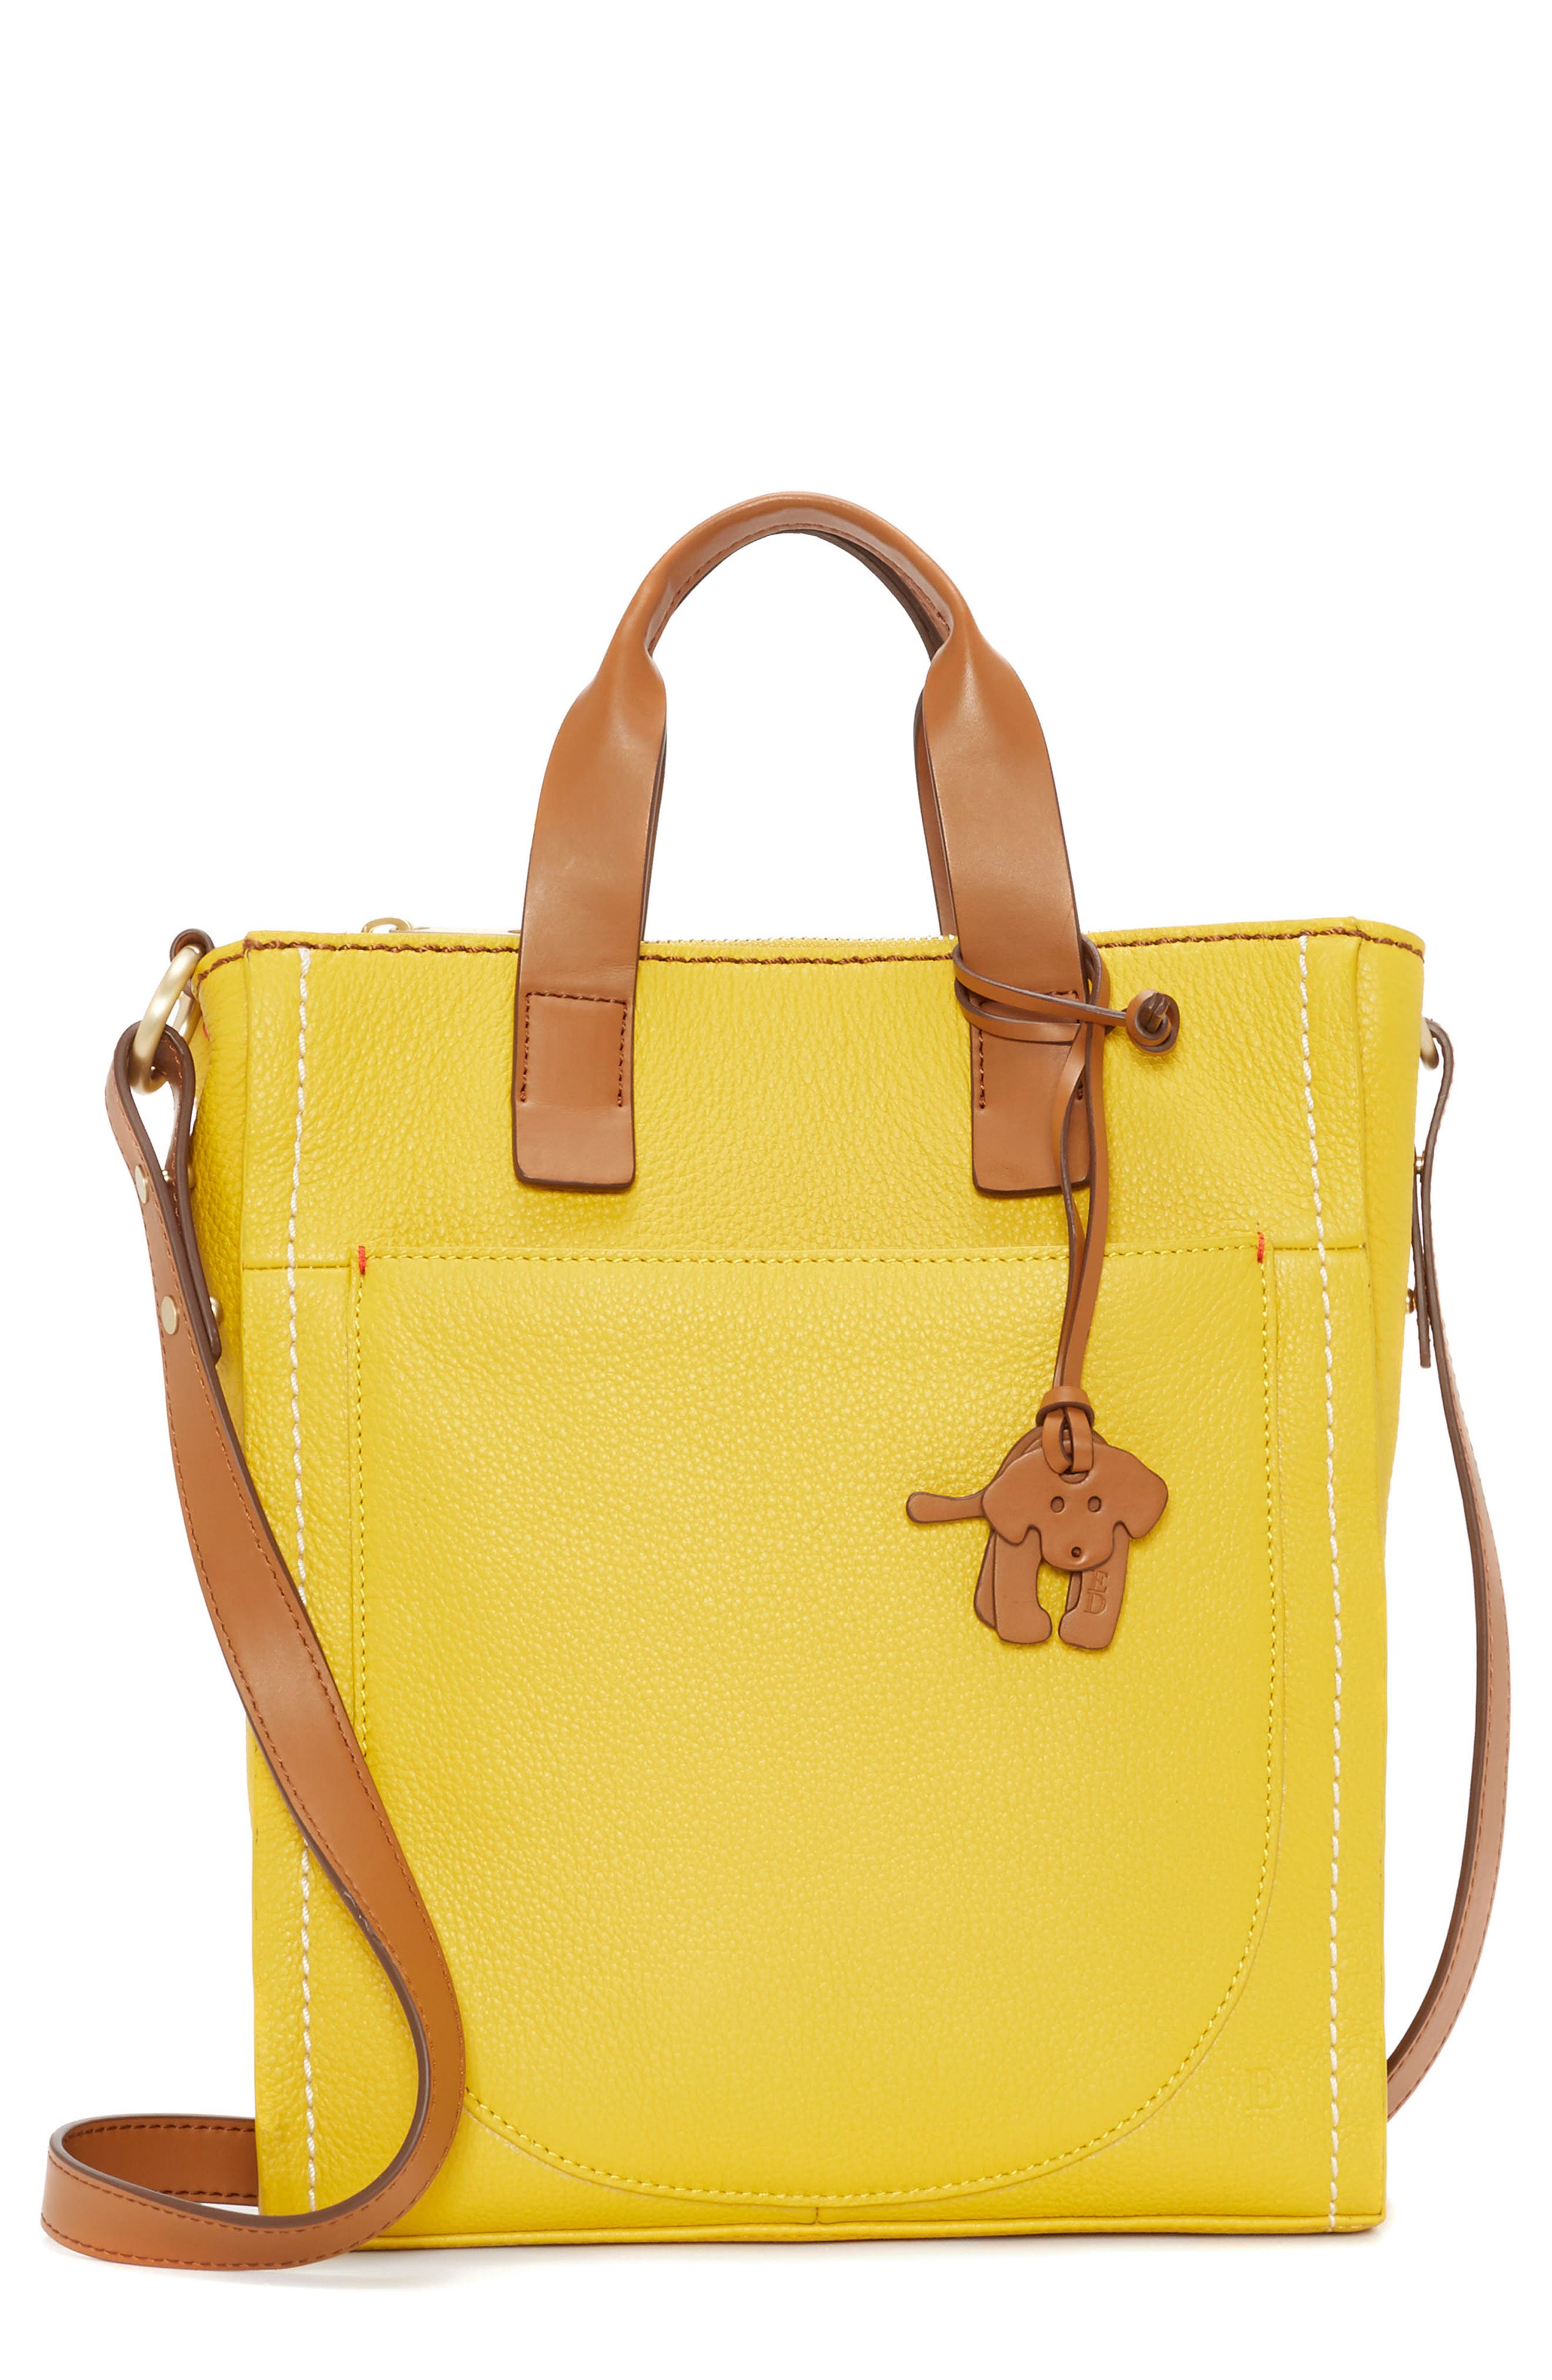 ED ELLEN DEGENERES Small Baja Leather Tote, Main, color, 701